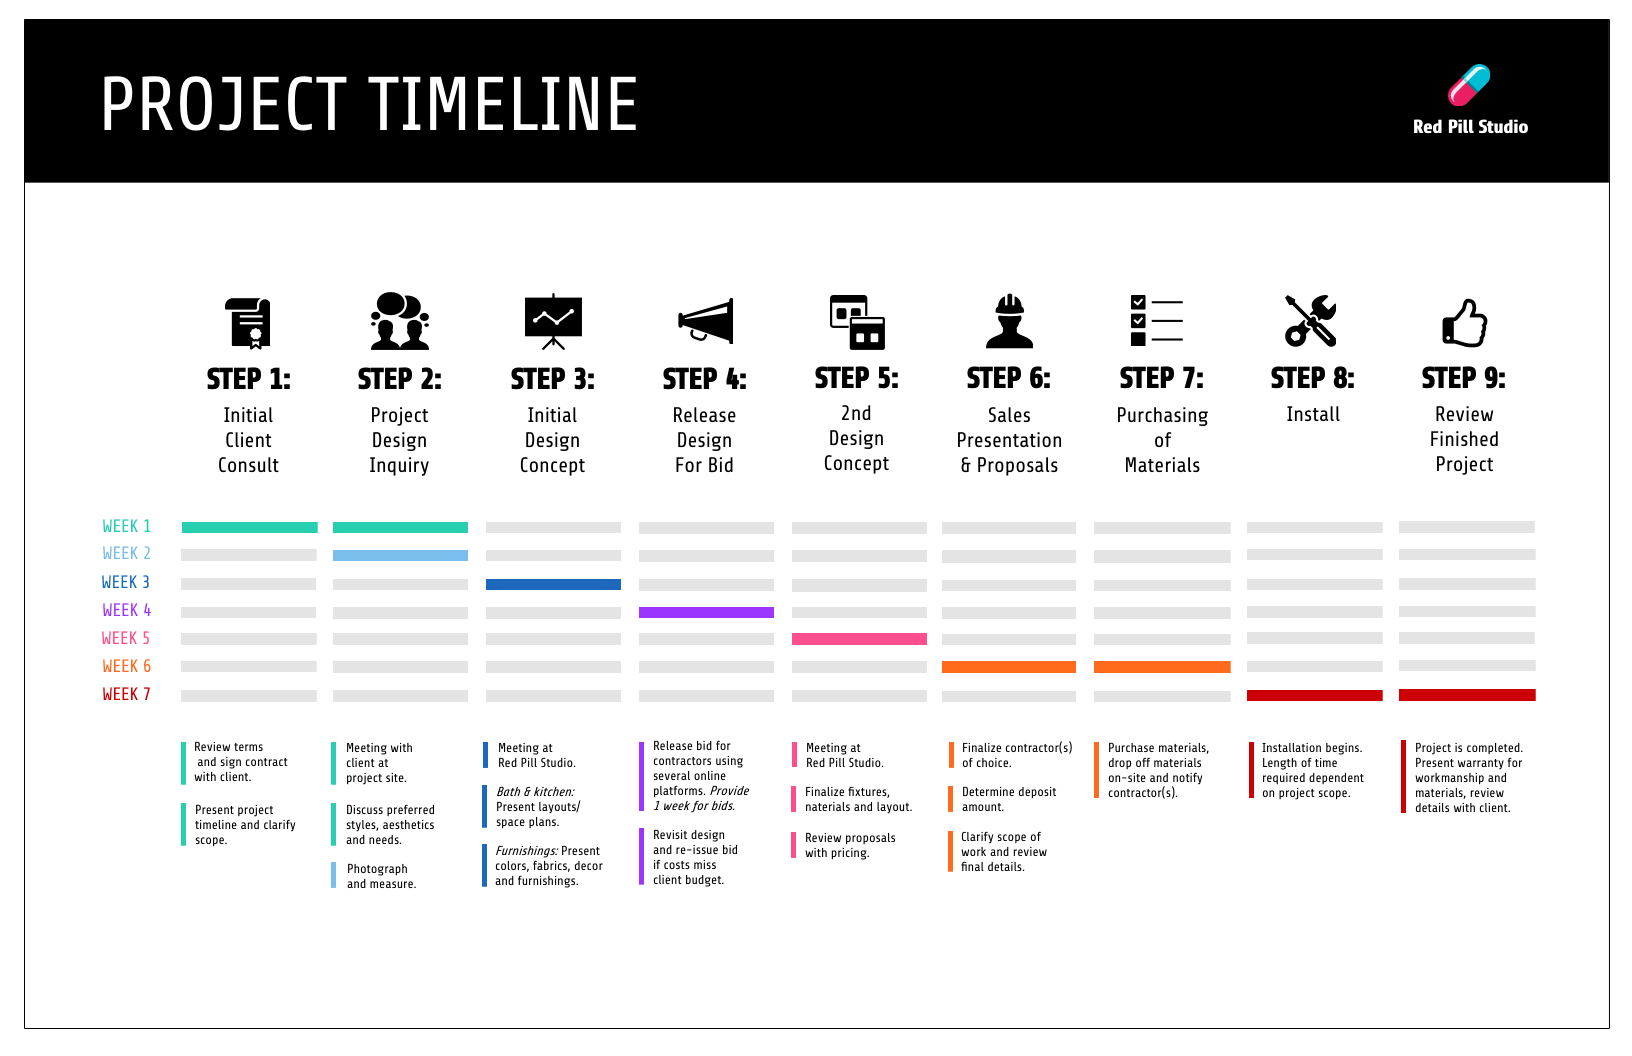 Project Plan Timeline Infographic Template Venngage